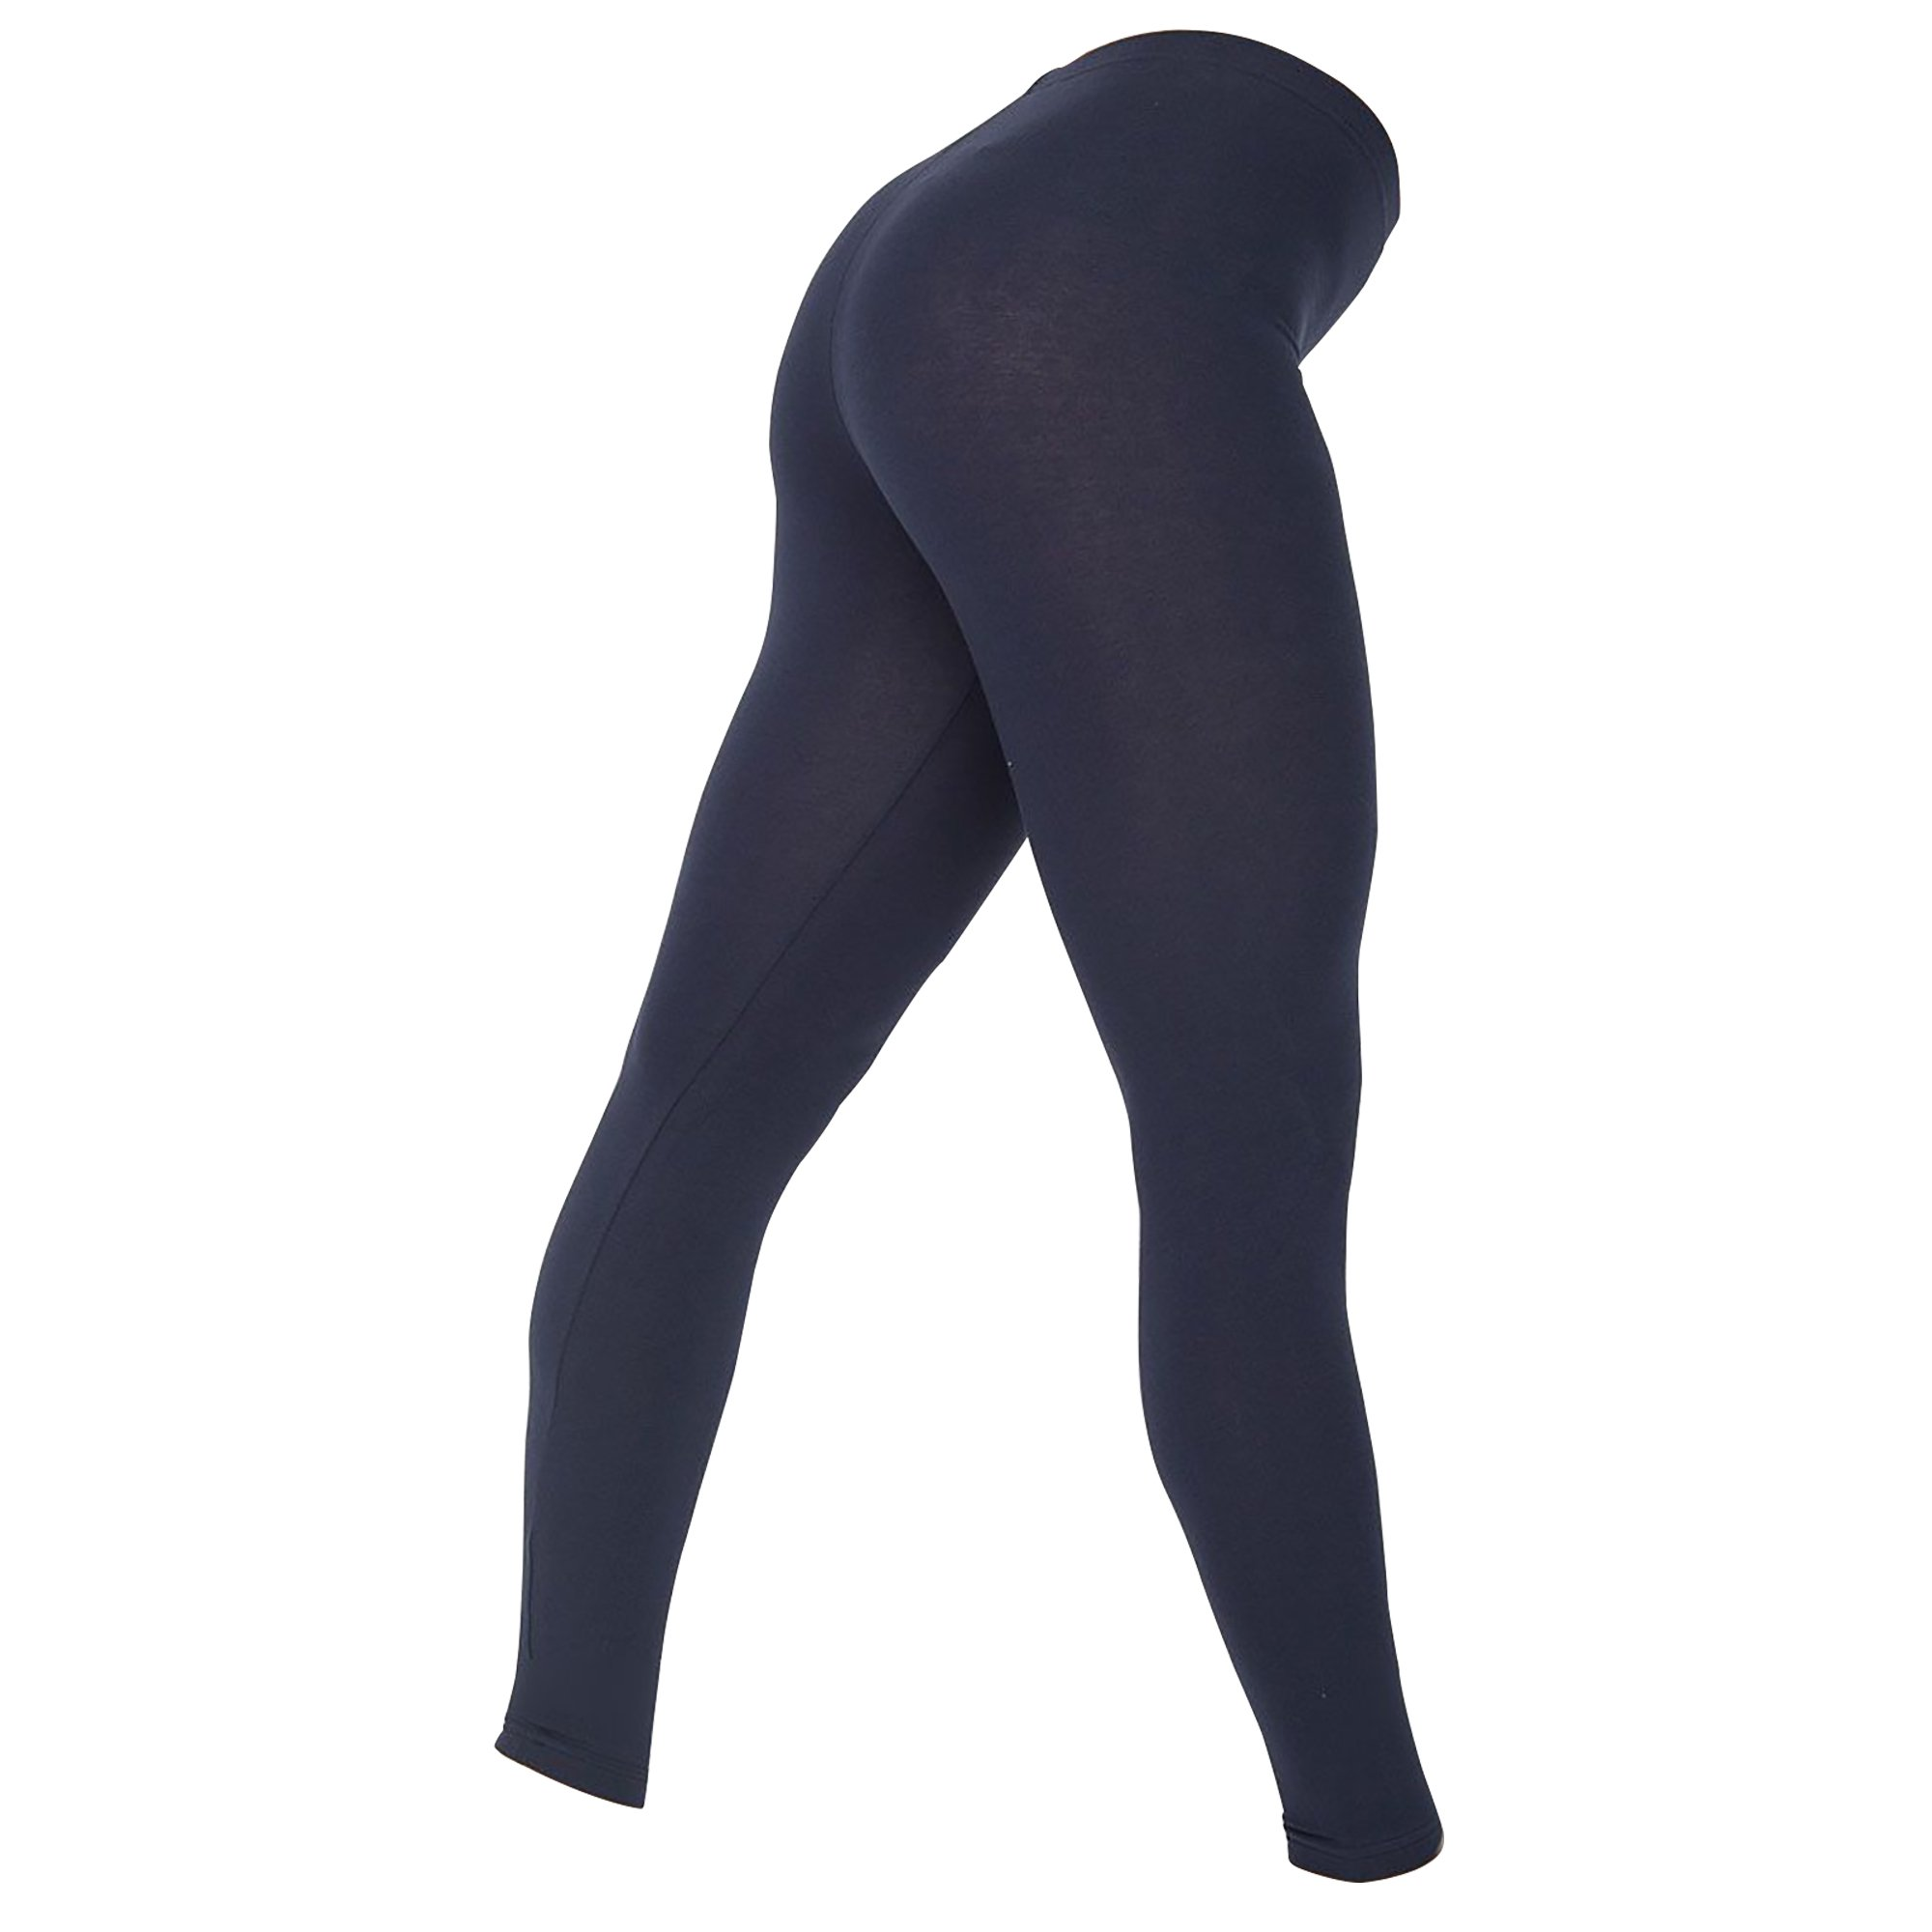 American Apparel Womens/Ladies Cotton Spandex Jersey Leggings (L) (Navy)